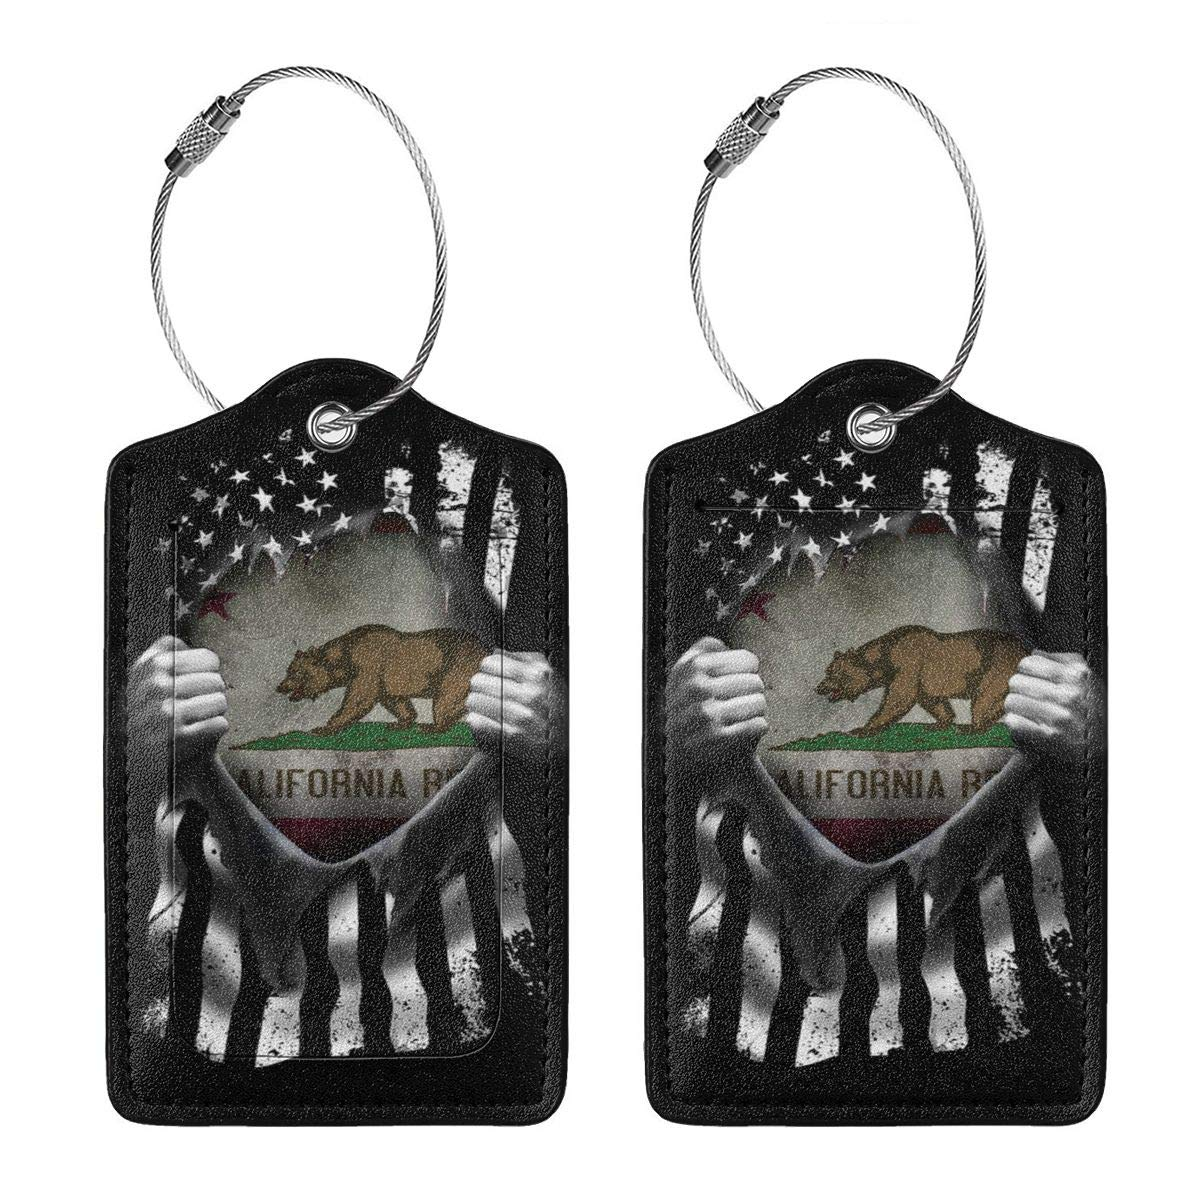 Leather Luggage Tag California Historic Bear Flag Pull Apart Luggage Tags For Suitcase Travel Lover Gifts For Men Women 2 PCS